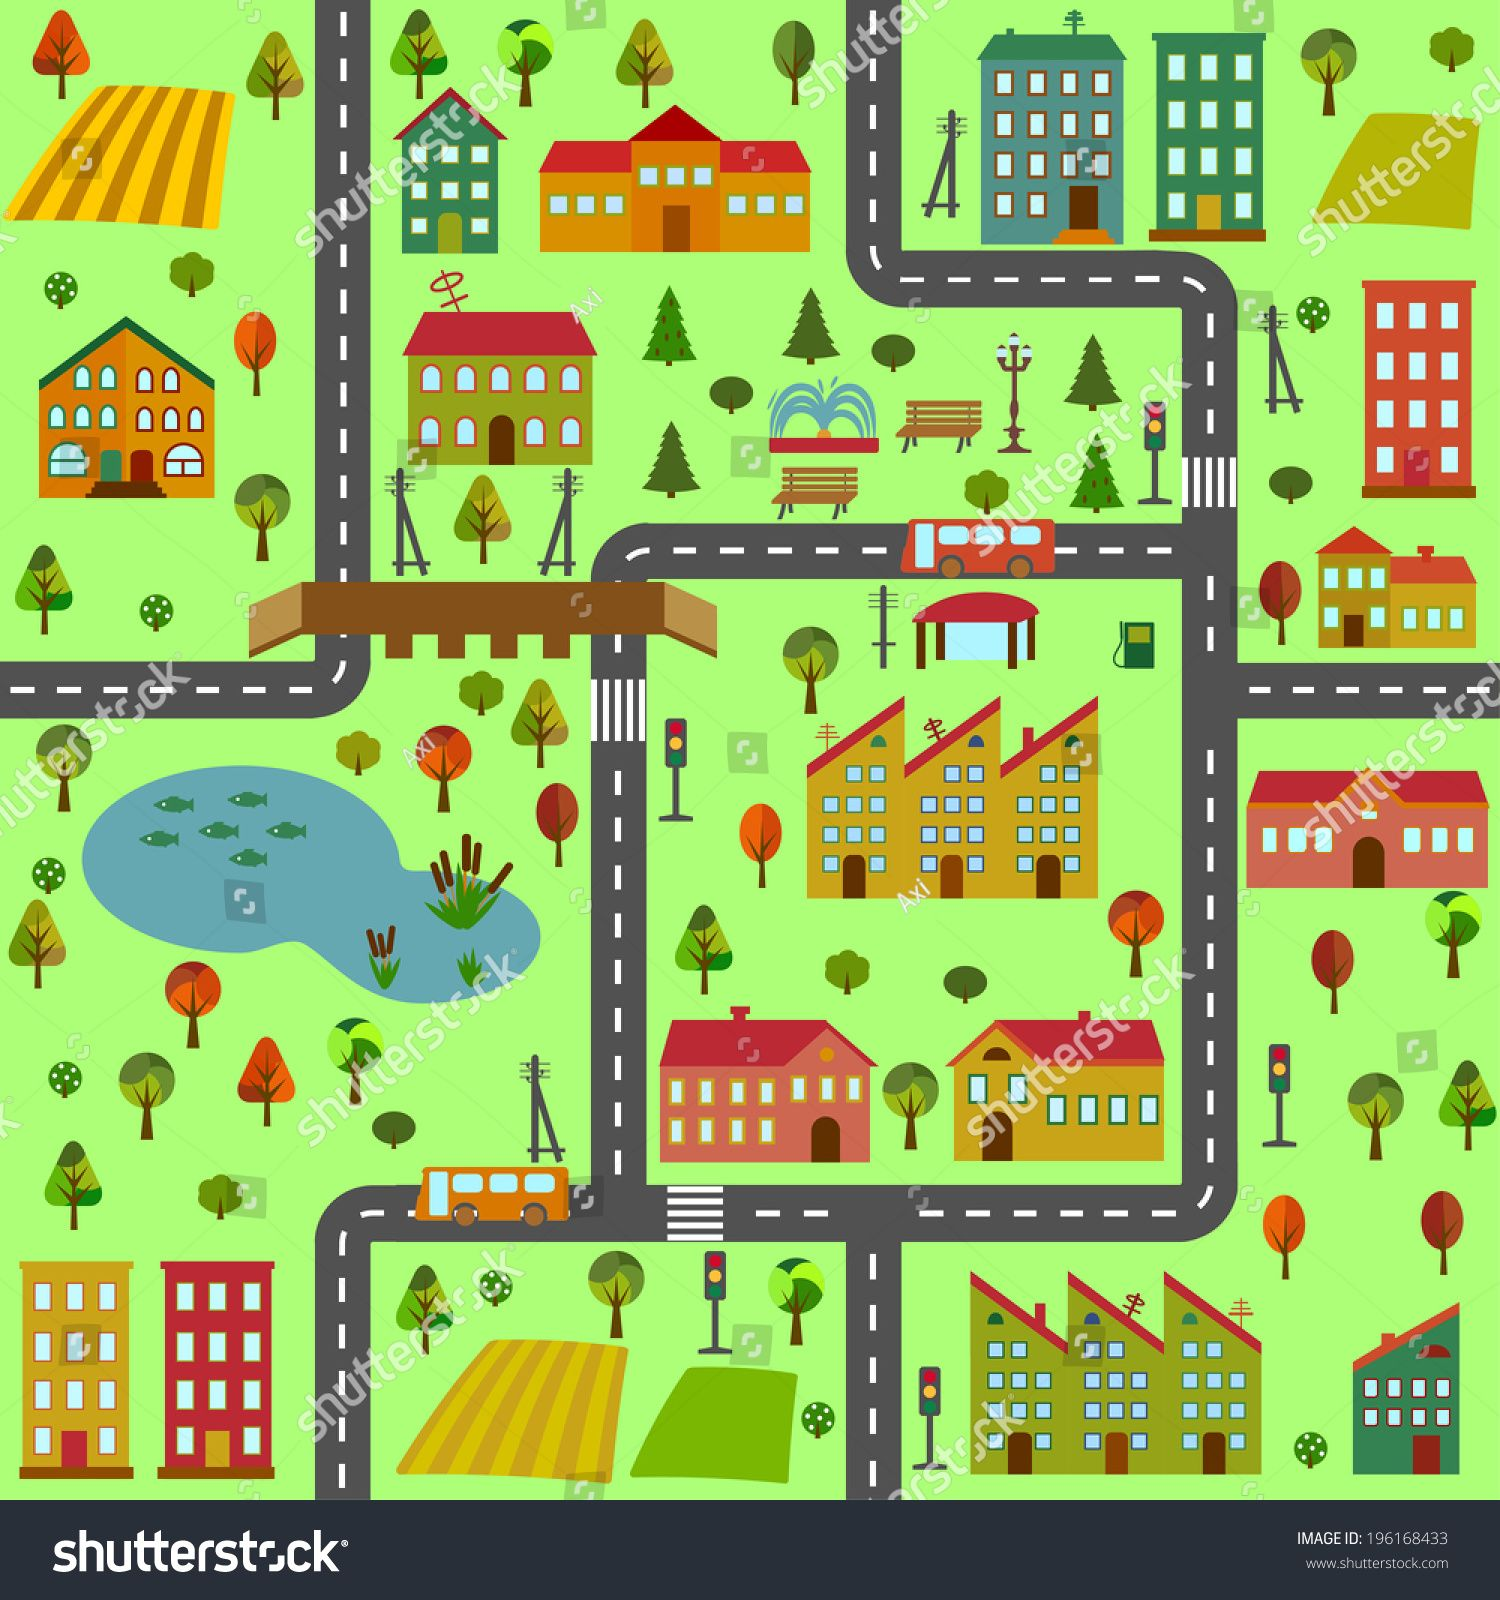 Cartoon Illustration Of A Map Of The City With Different